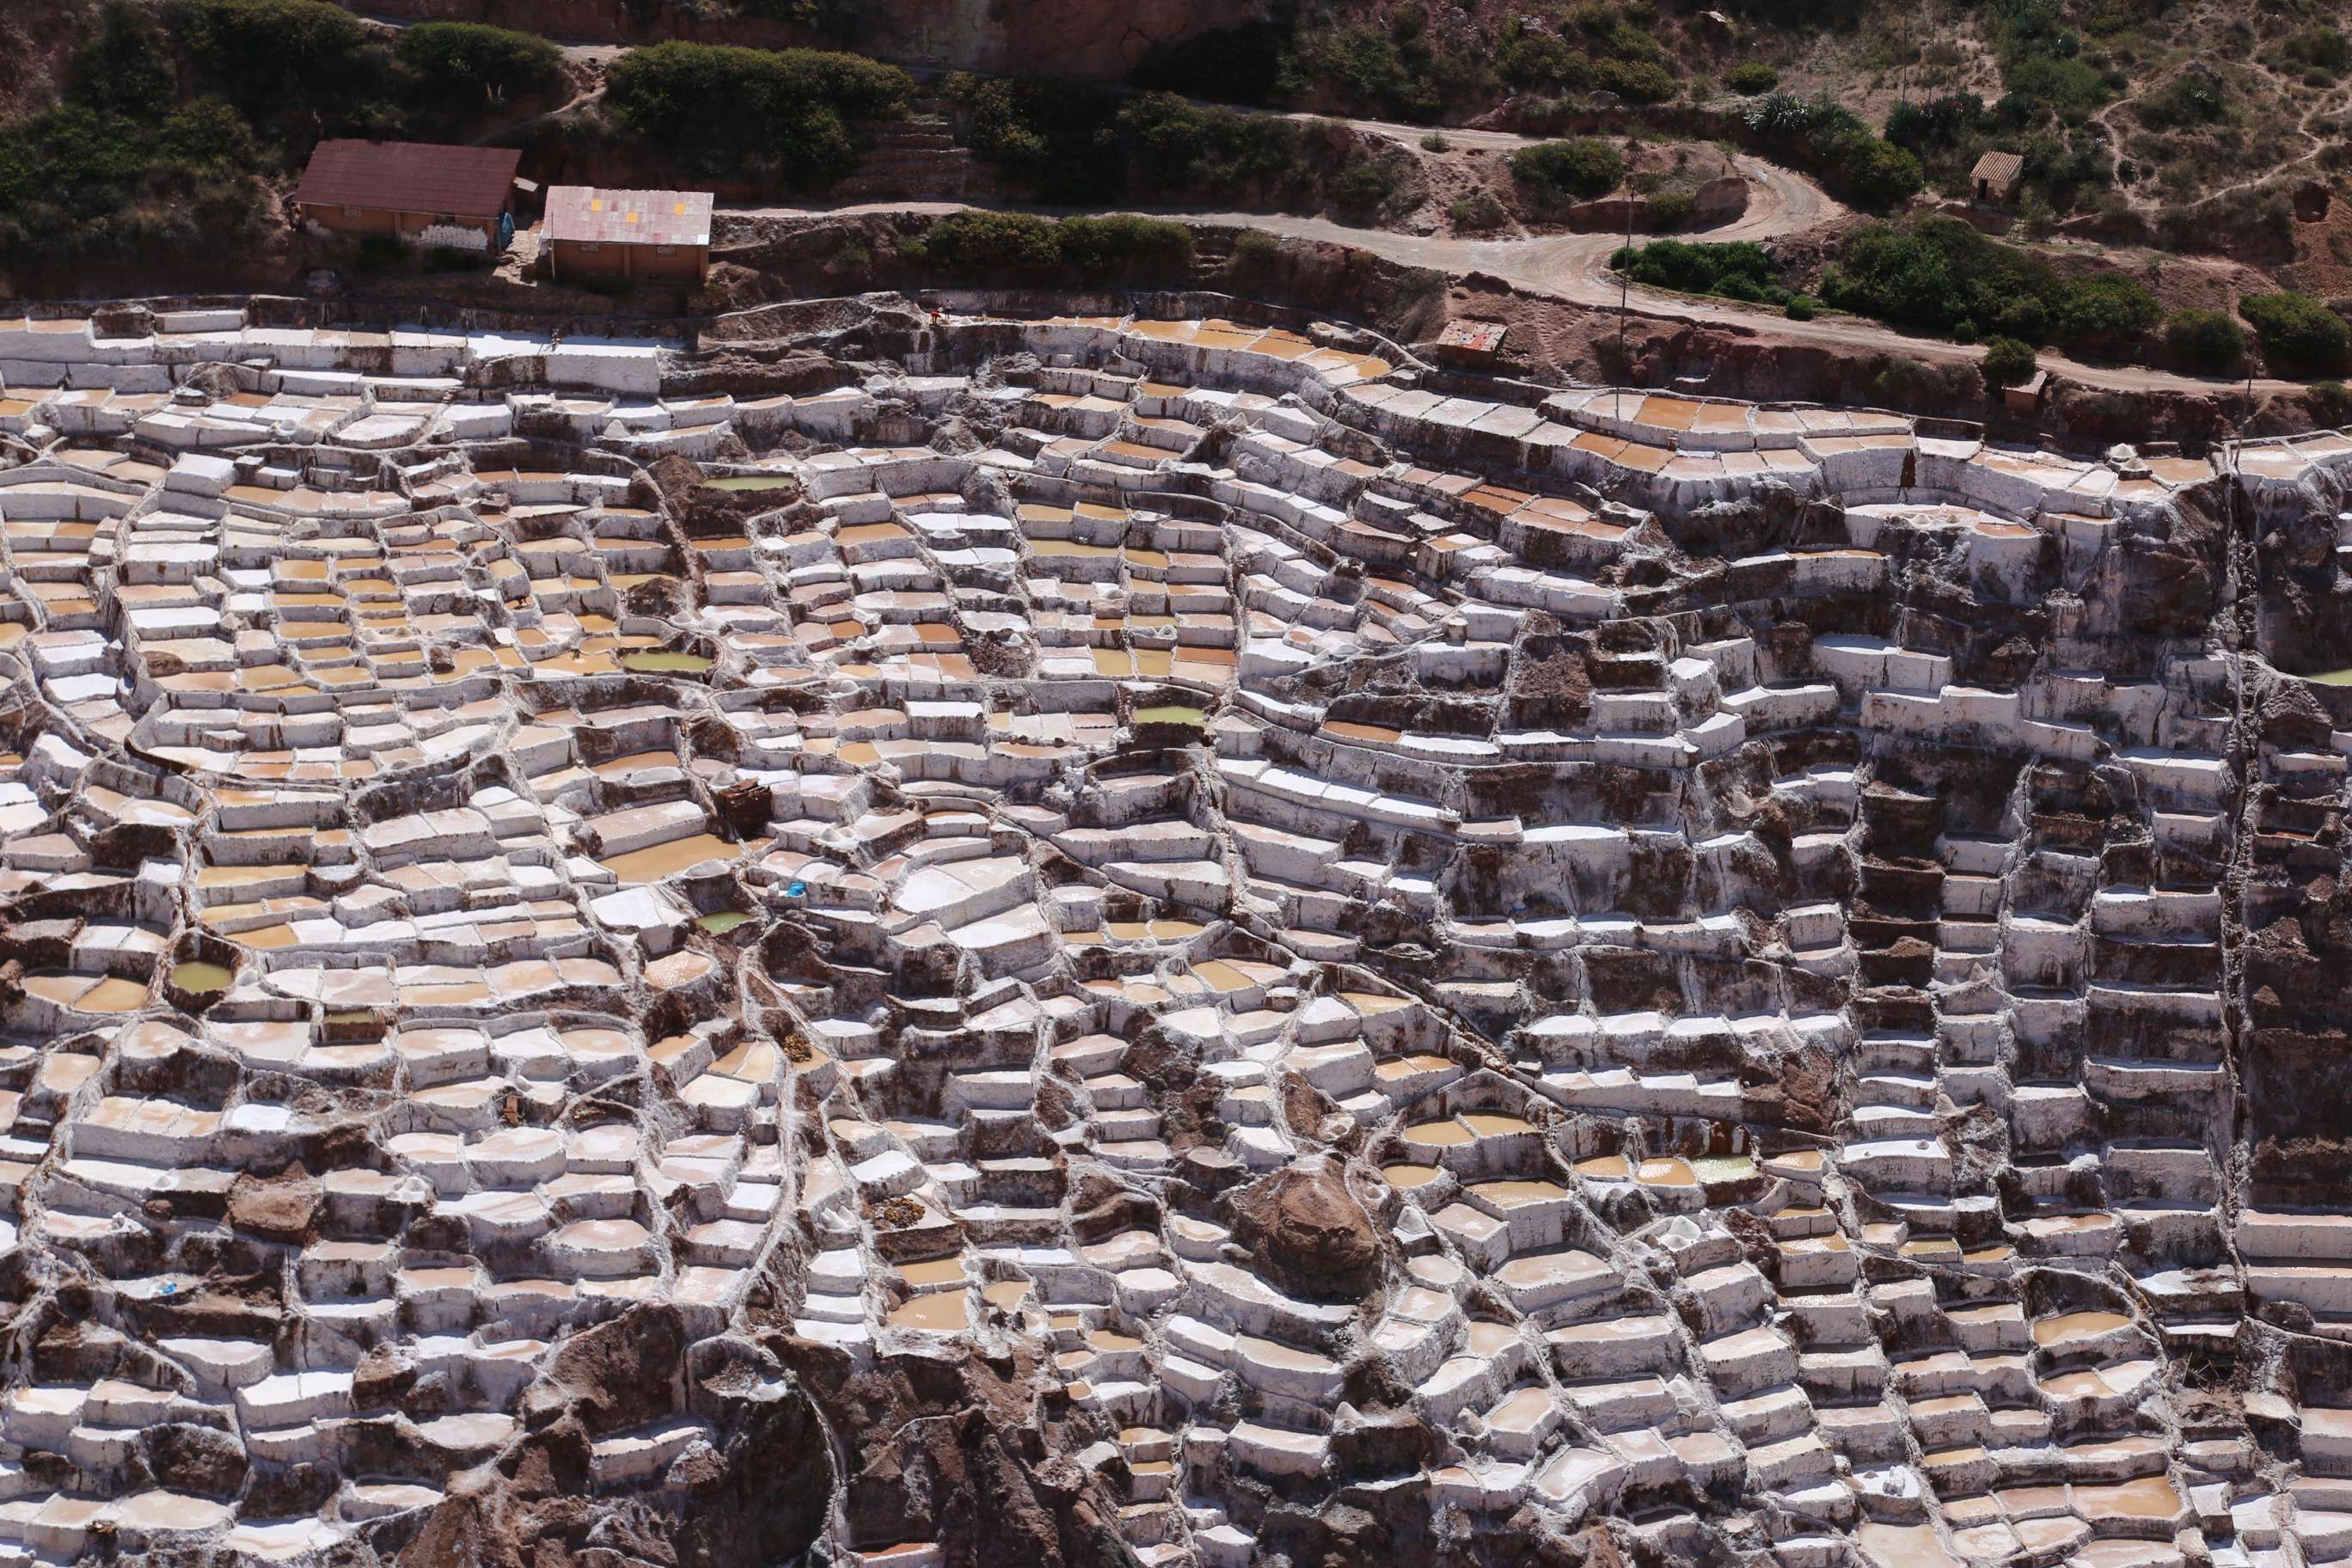 From a distance you might wonder where the snow came from, the hillside is so bright. But as you get closer, you appreciate the importance of the Maras salt works.